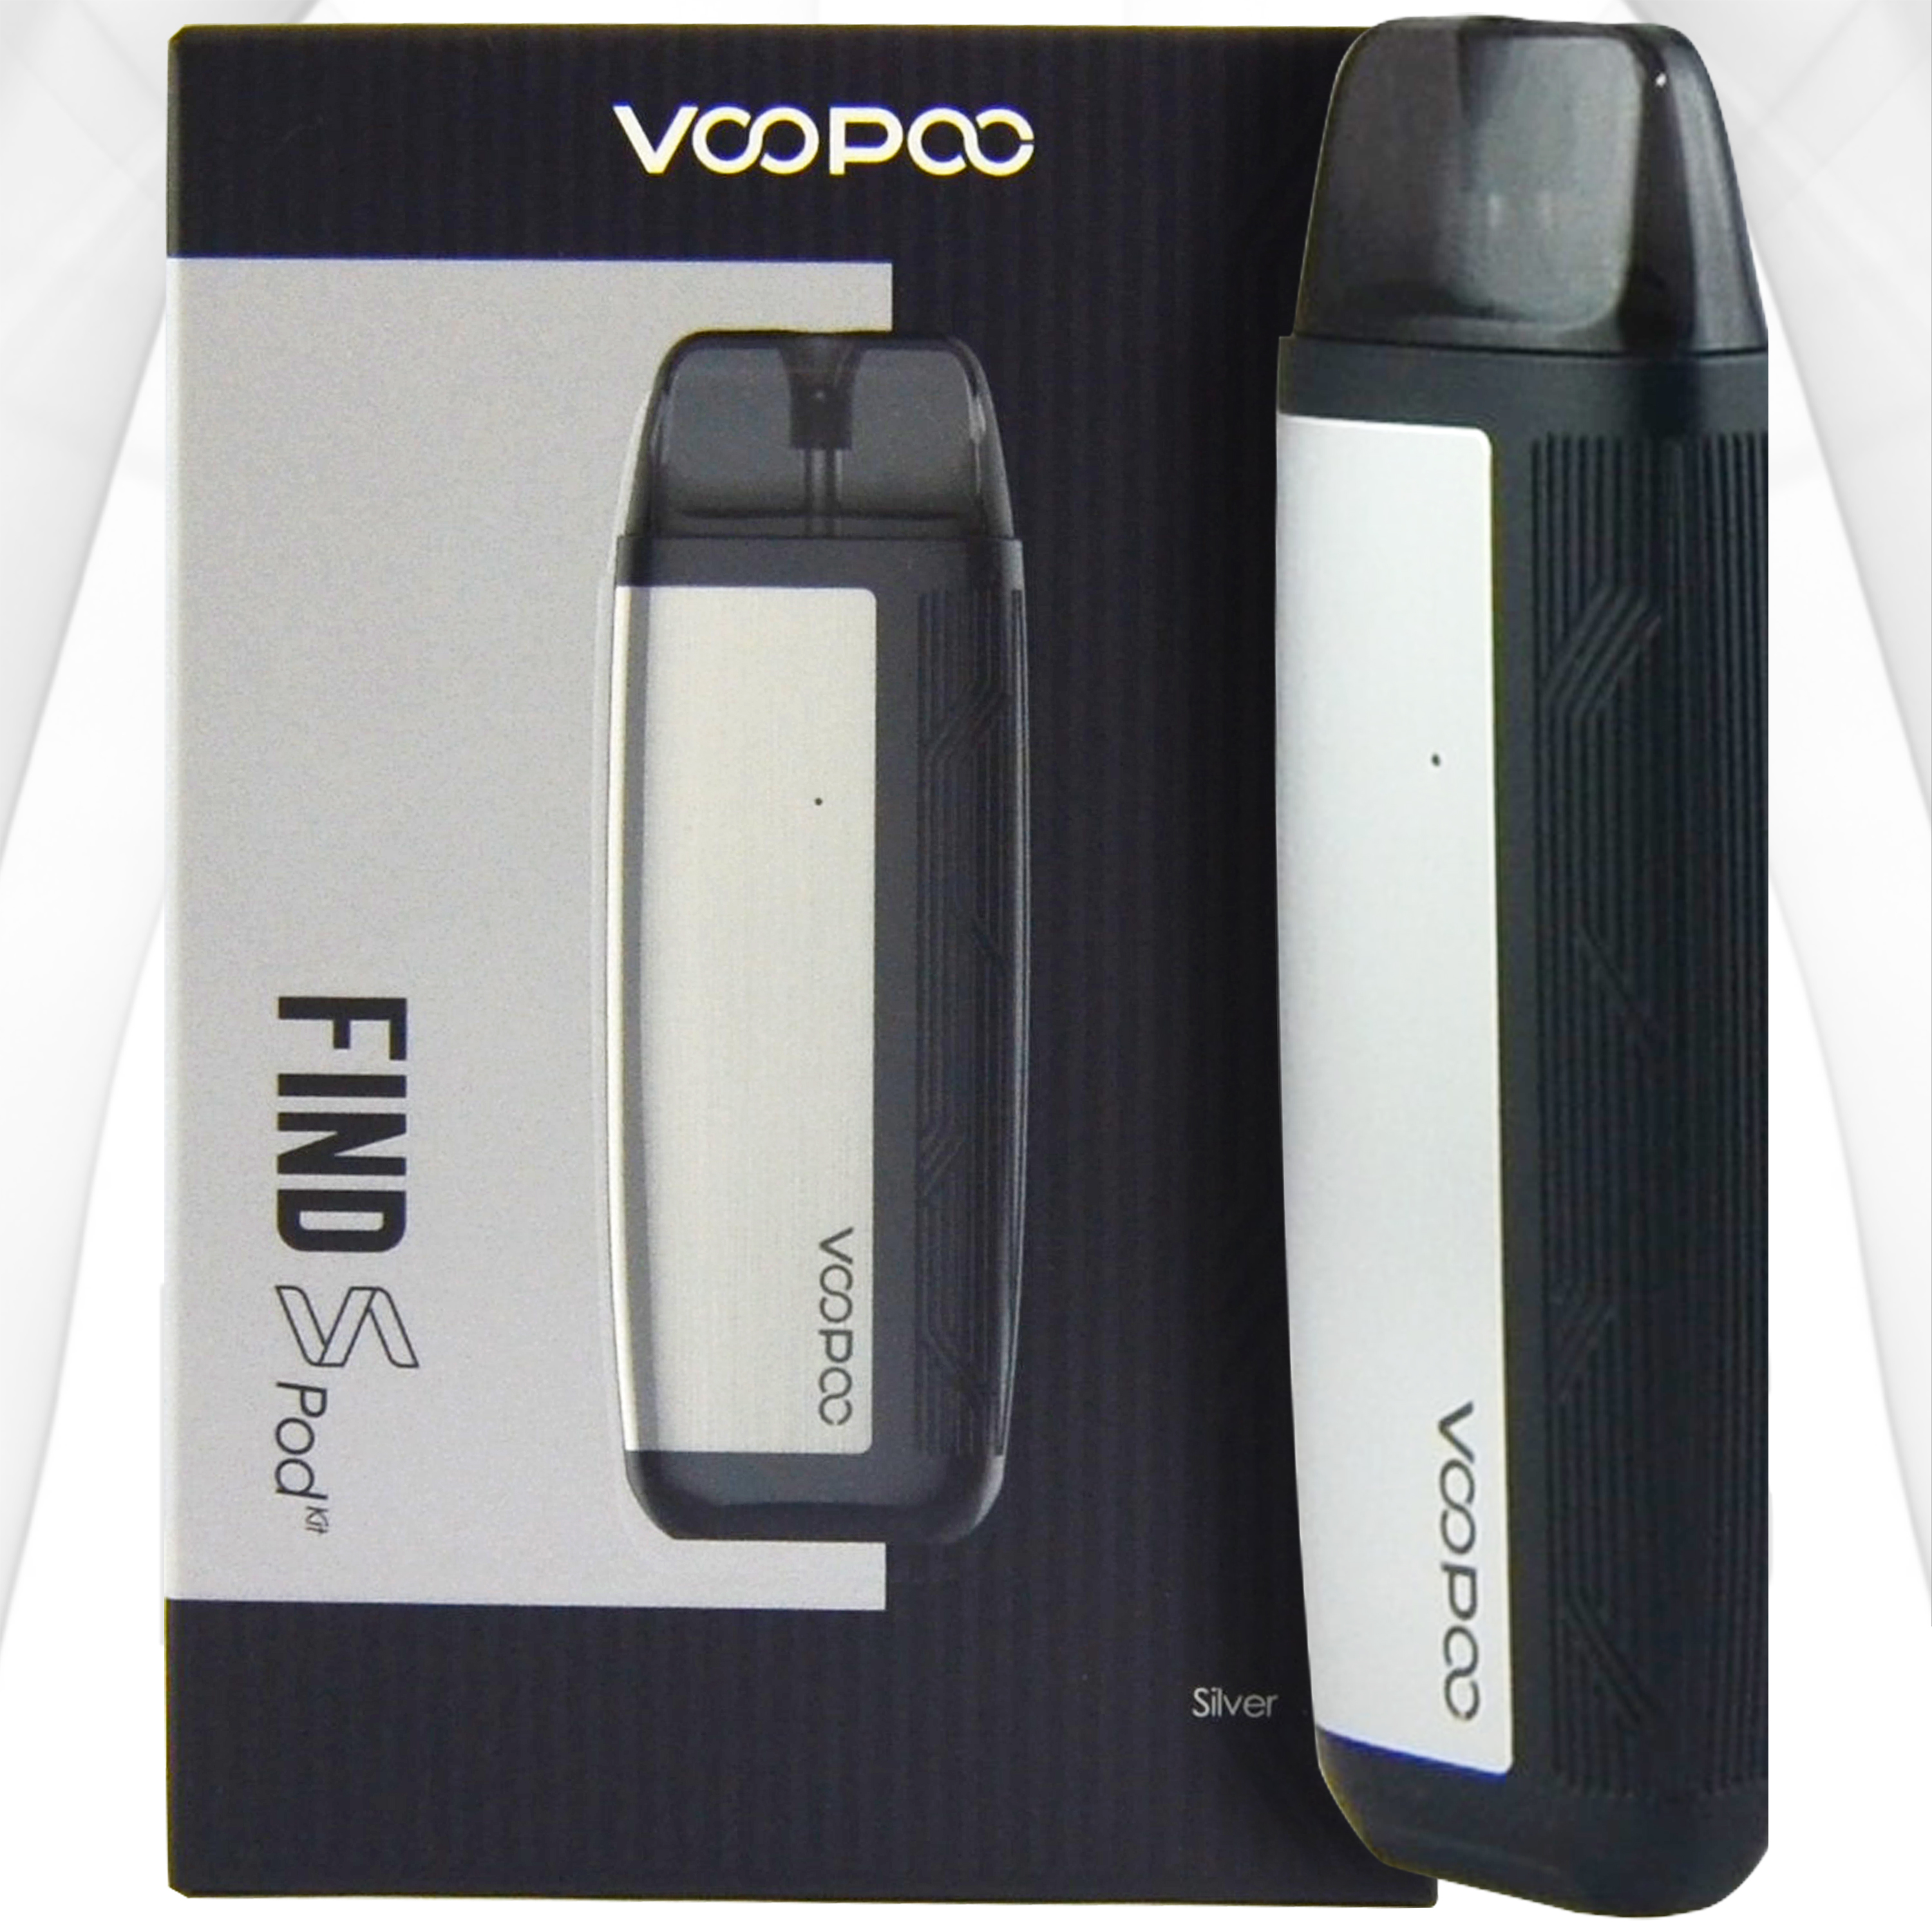 VOOPOO Find S Pod Kit 12W | Silver